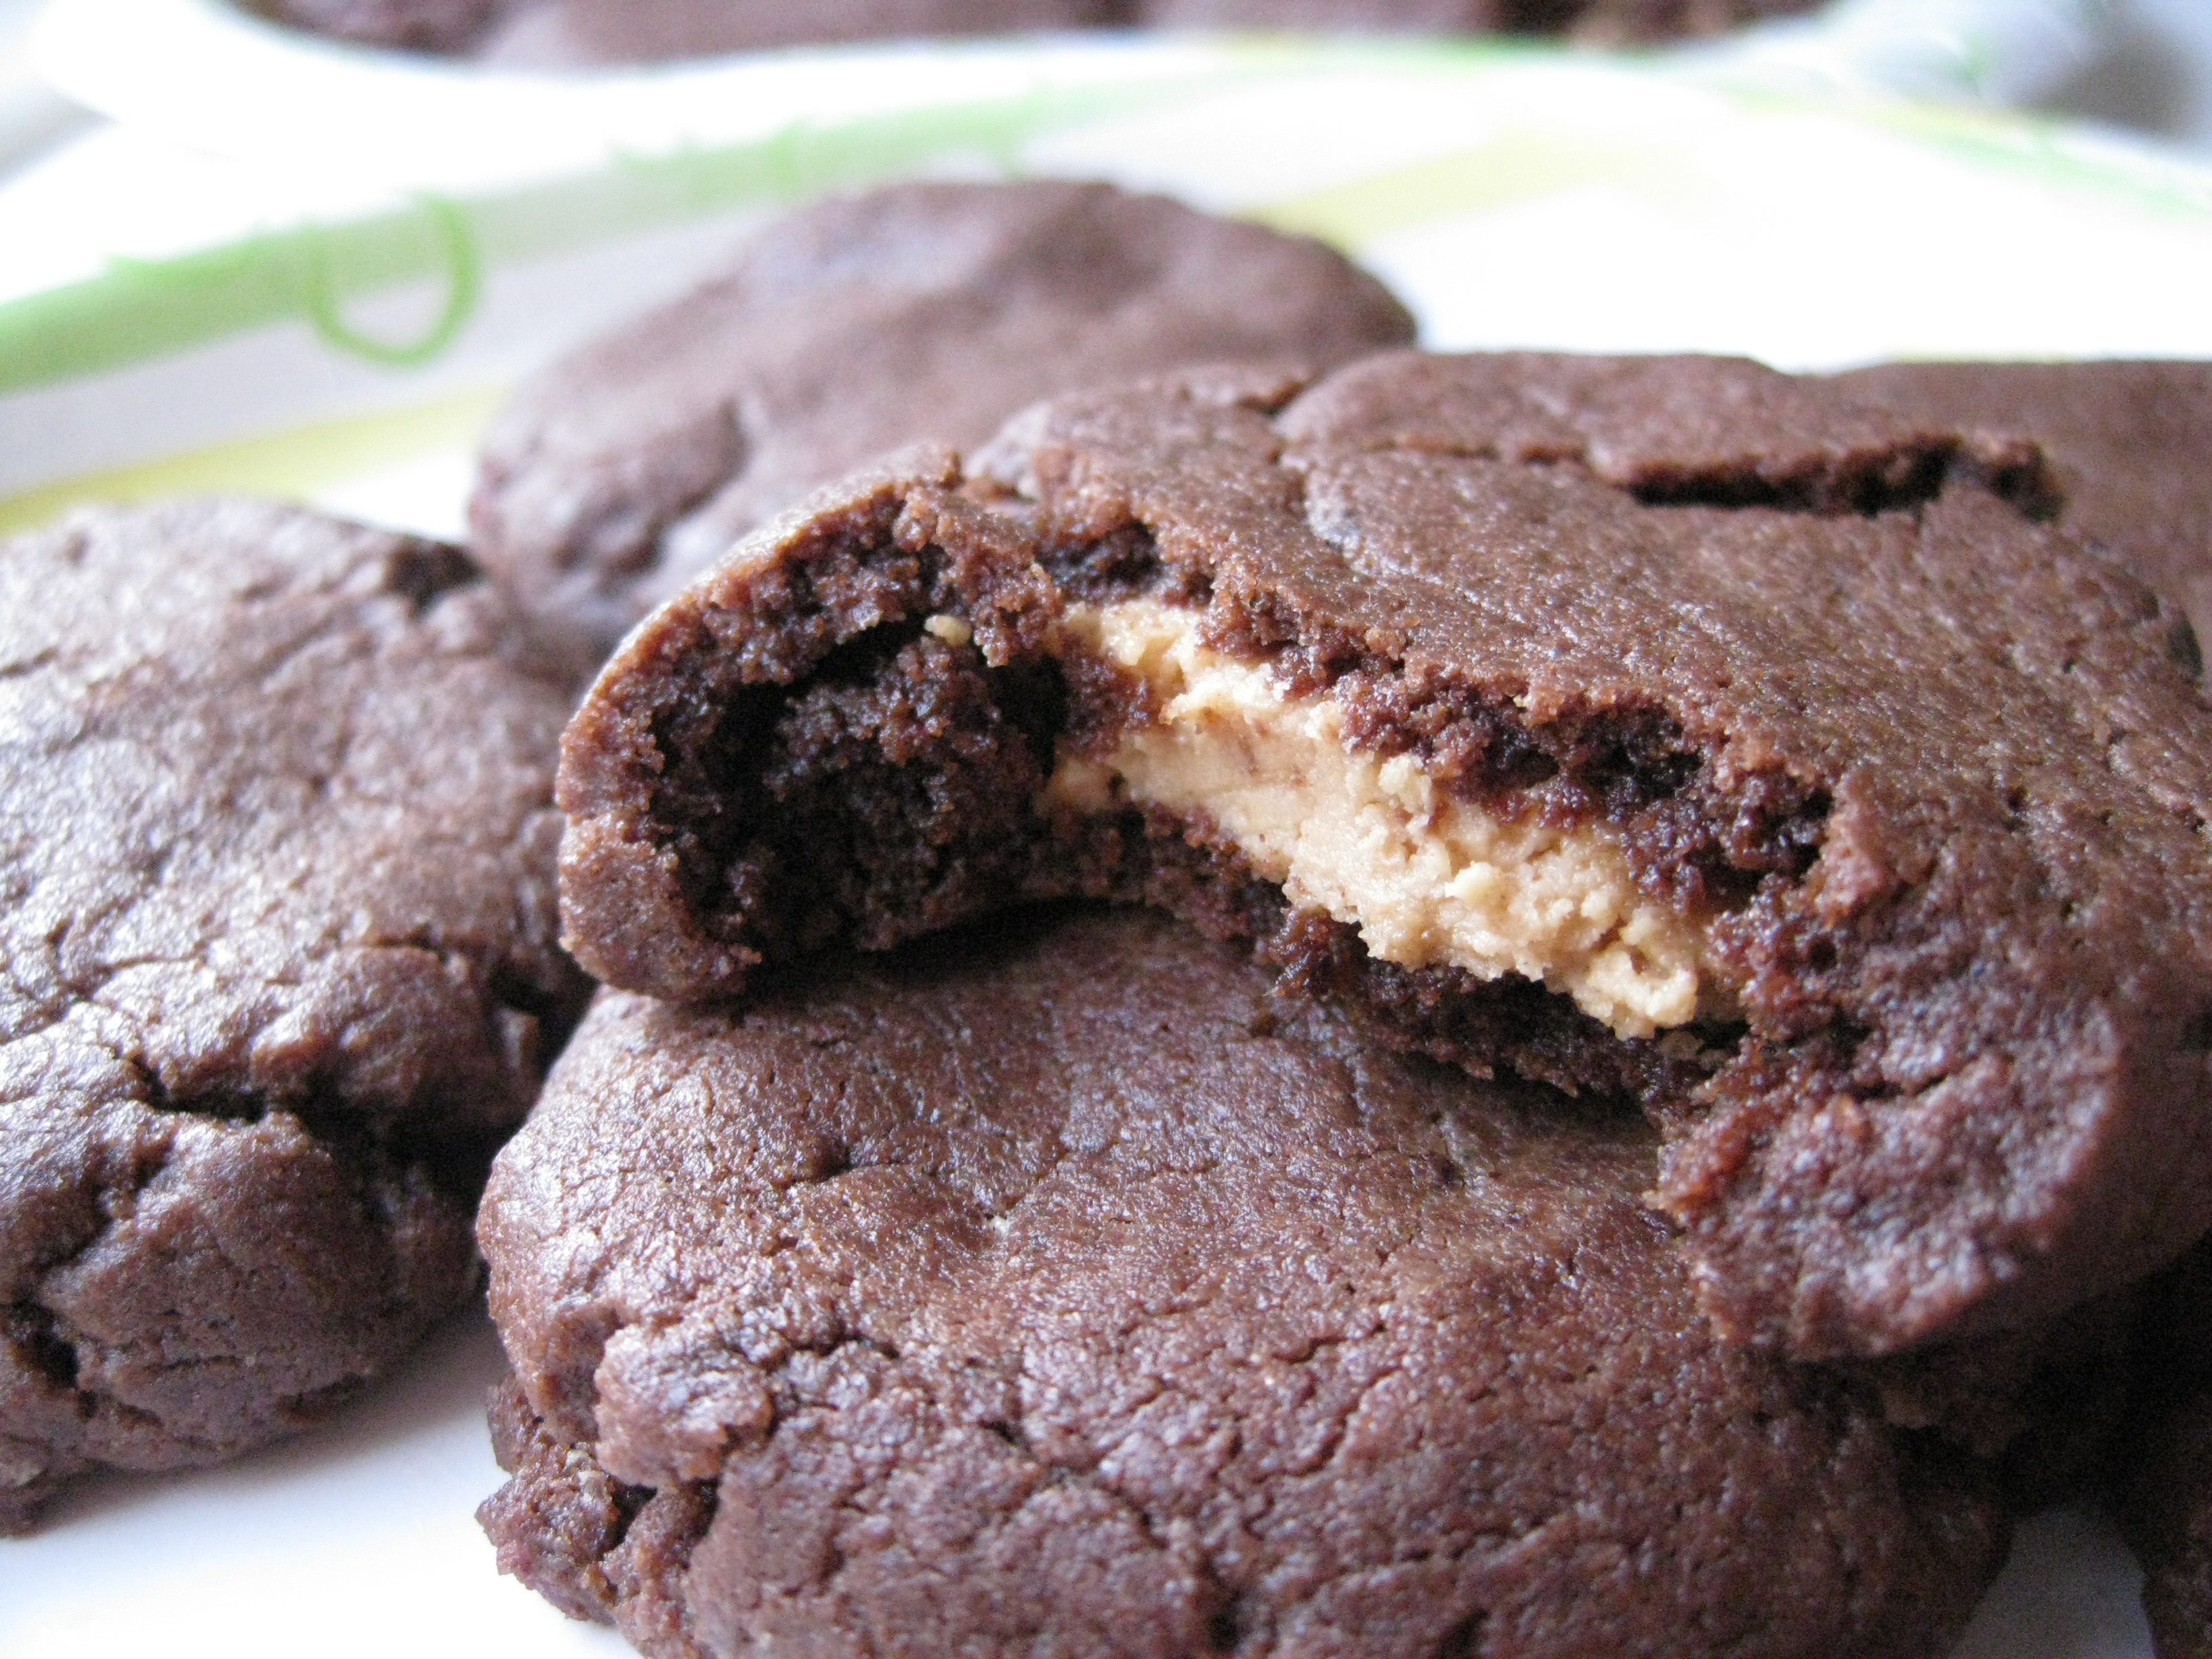 Peanut Butter Filled Chocolate Cookies | Pragmatic Attic